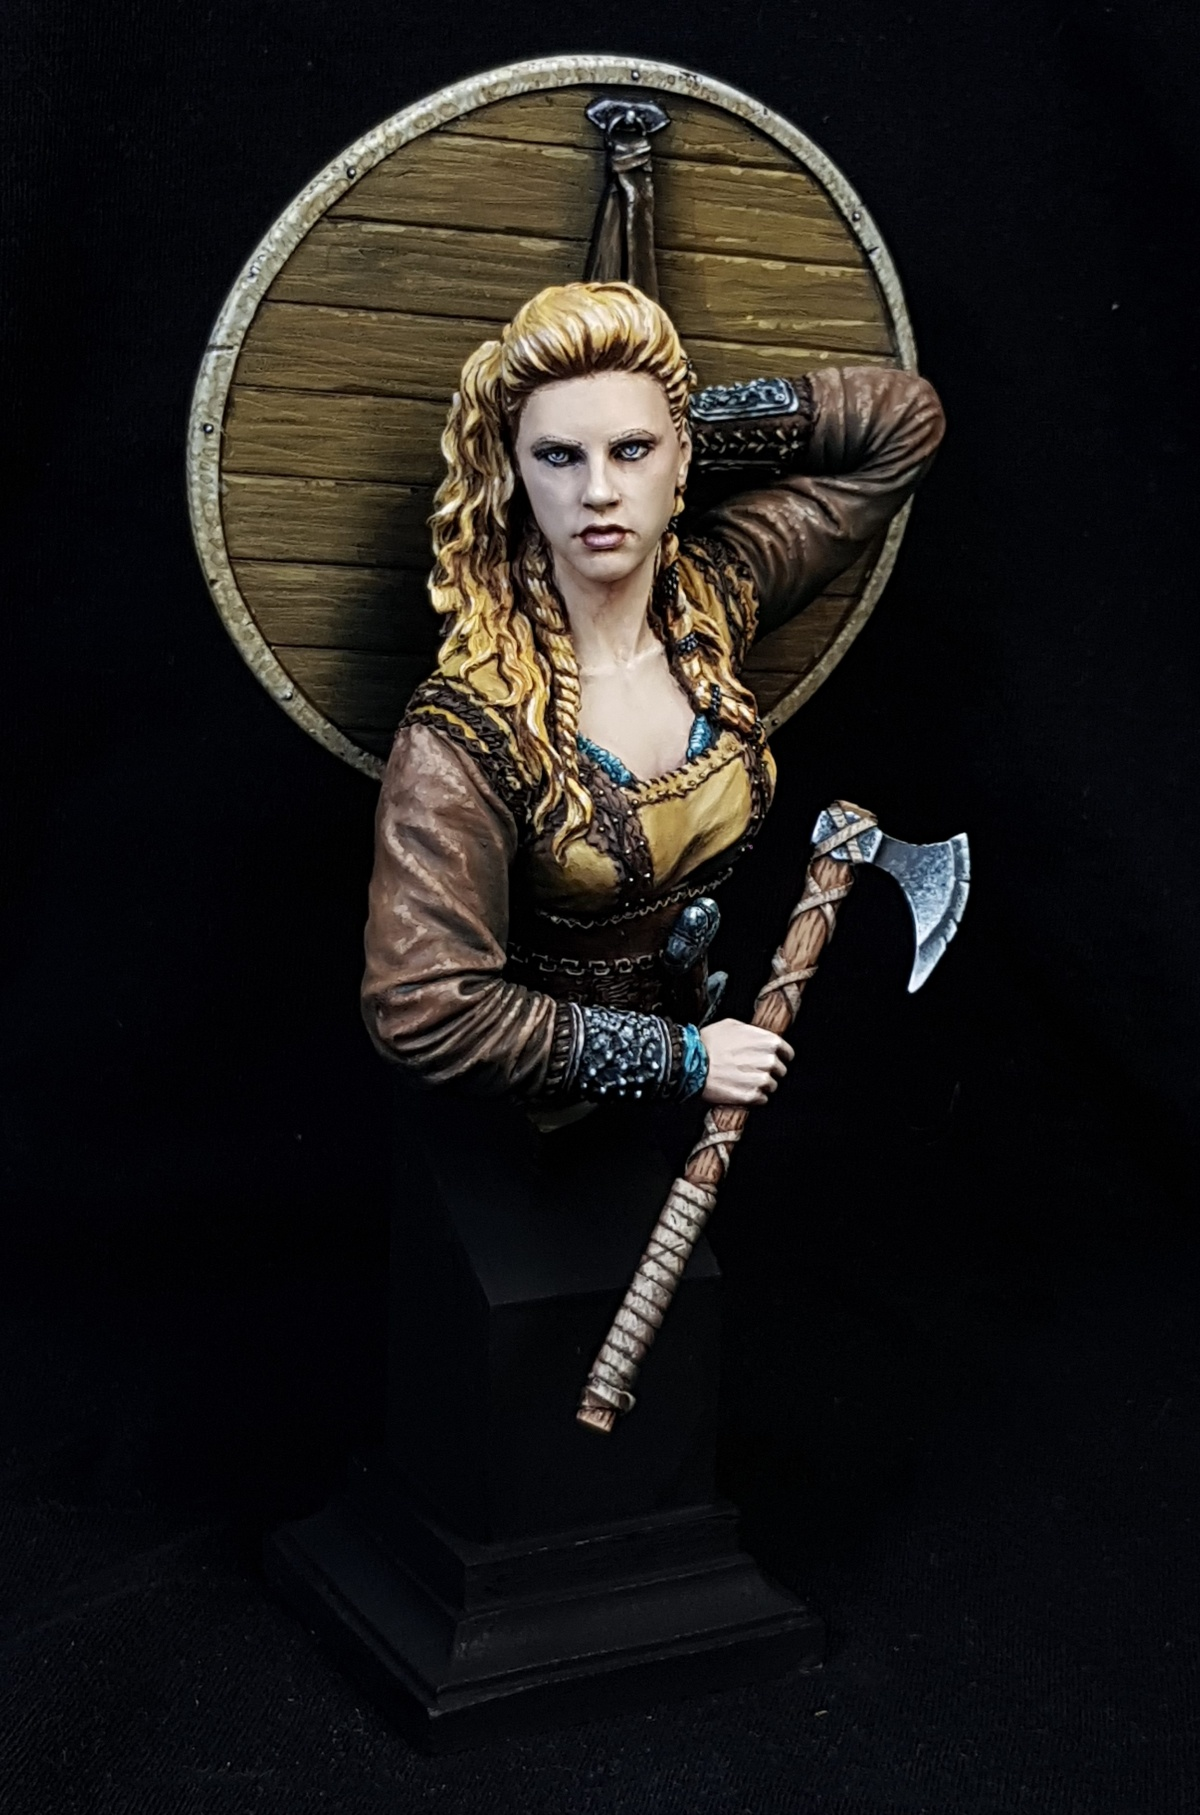 Shield Maiden Lagertha By Conny U0026quot Inquizarus U0026quot Karlsson